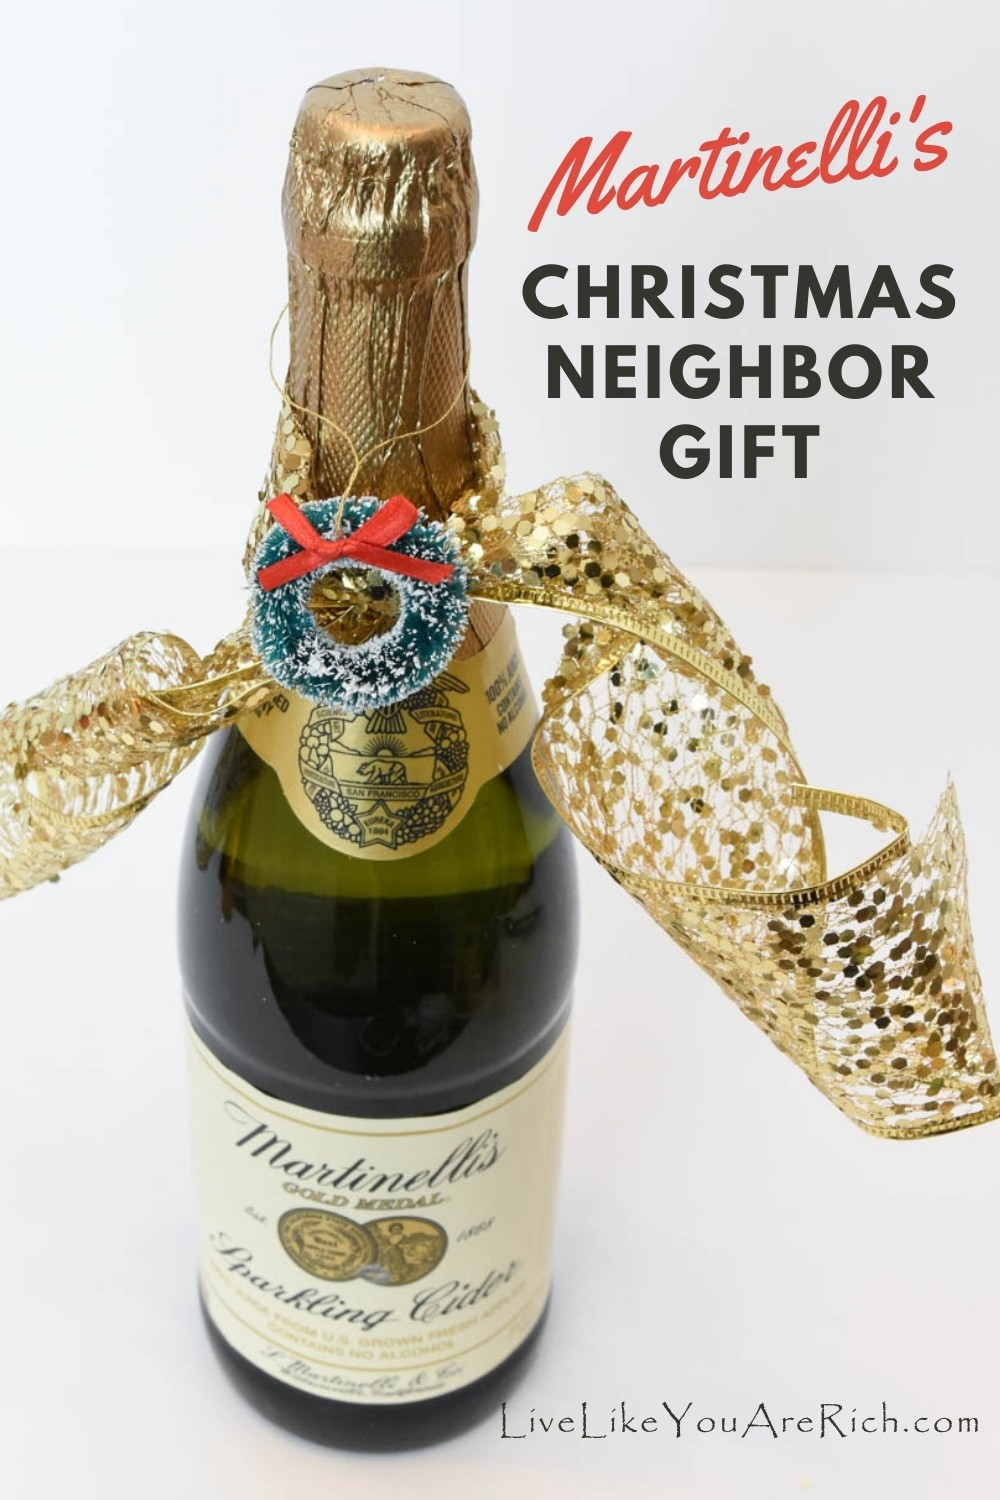 A Martinelli's Christmas neighbor gift is a great way to share the holiday season with others. Giving Martinelli's as a Neighbor Christmas Gift can be inexpensive if found on sale. It is also an overall a crowd-pleasing gift, and its quick put together as well. All great things to consider when you are deciding what to give out to your neighbors this year.